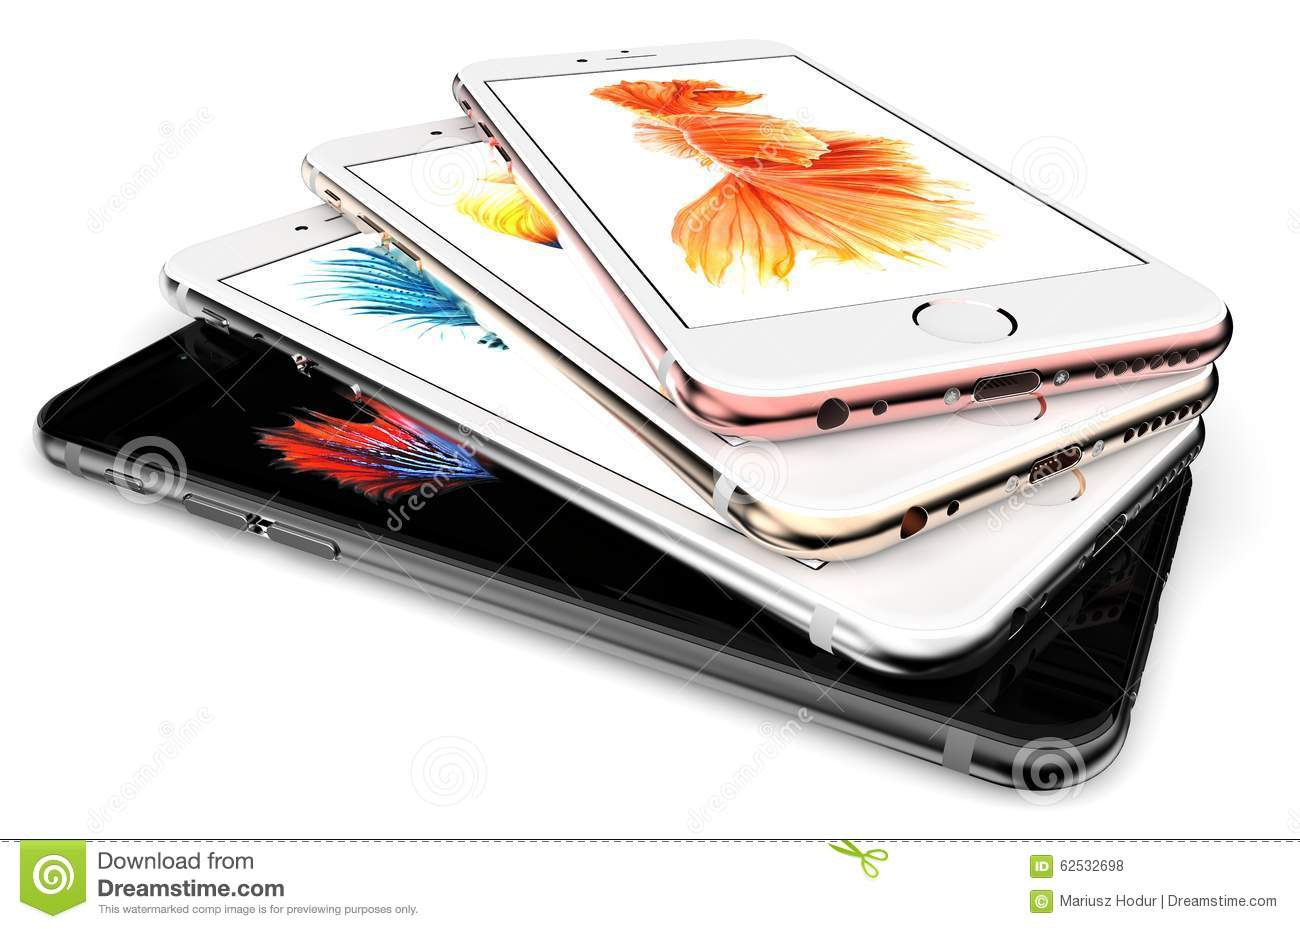 Iphone 6s release date september 25th, prices start at $199 and.